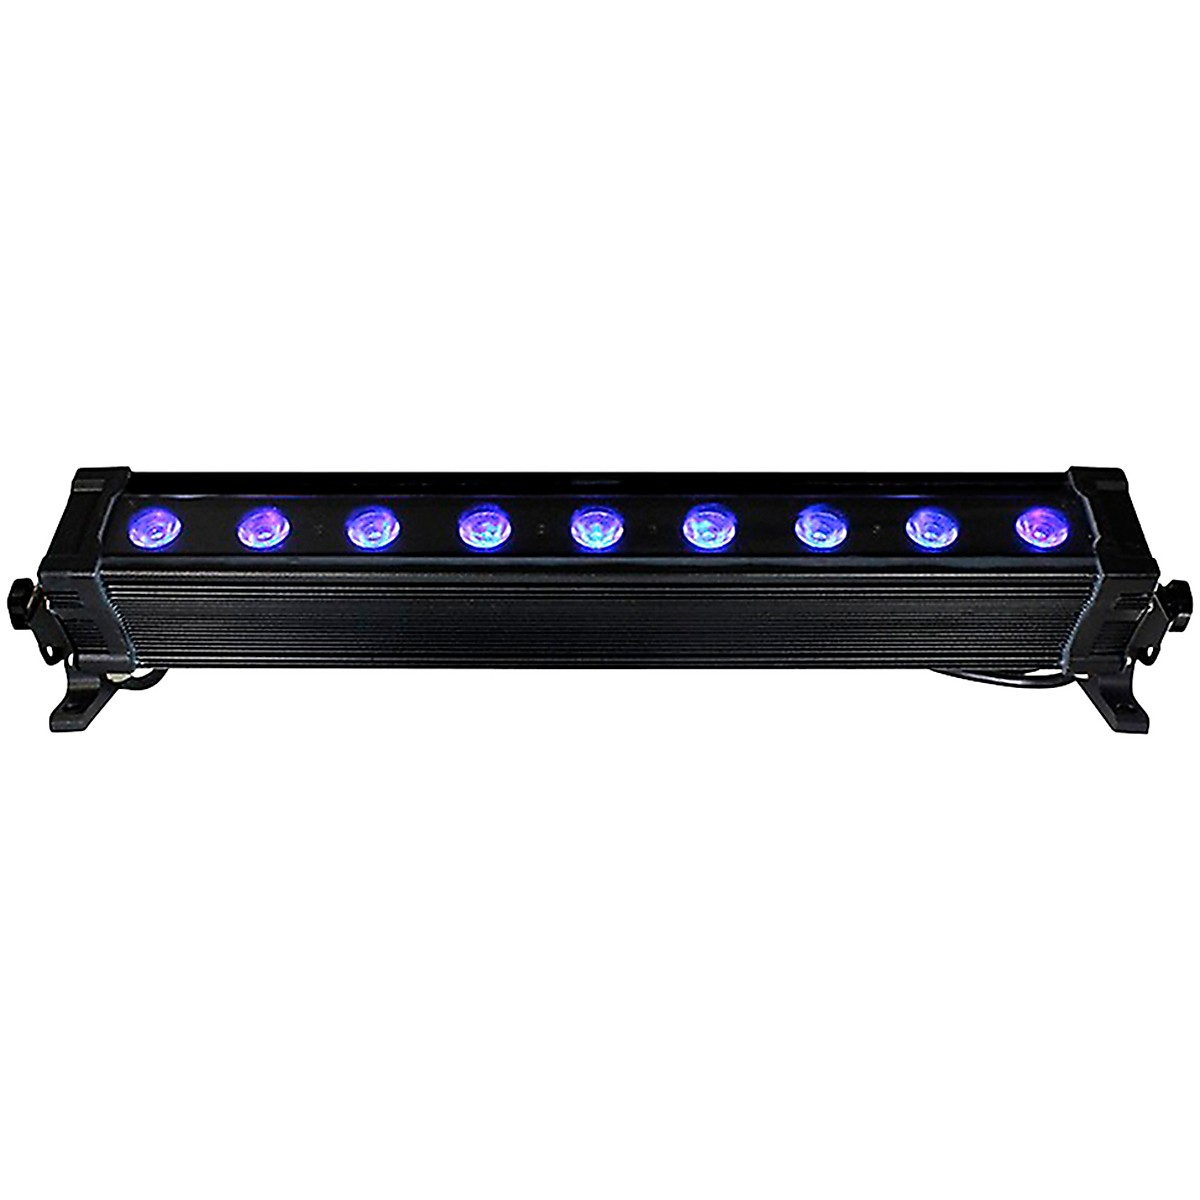 Blizzard ToughStick EXA RGBAW+UV LED Outdoor Rated Bar Wash Light